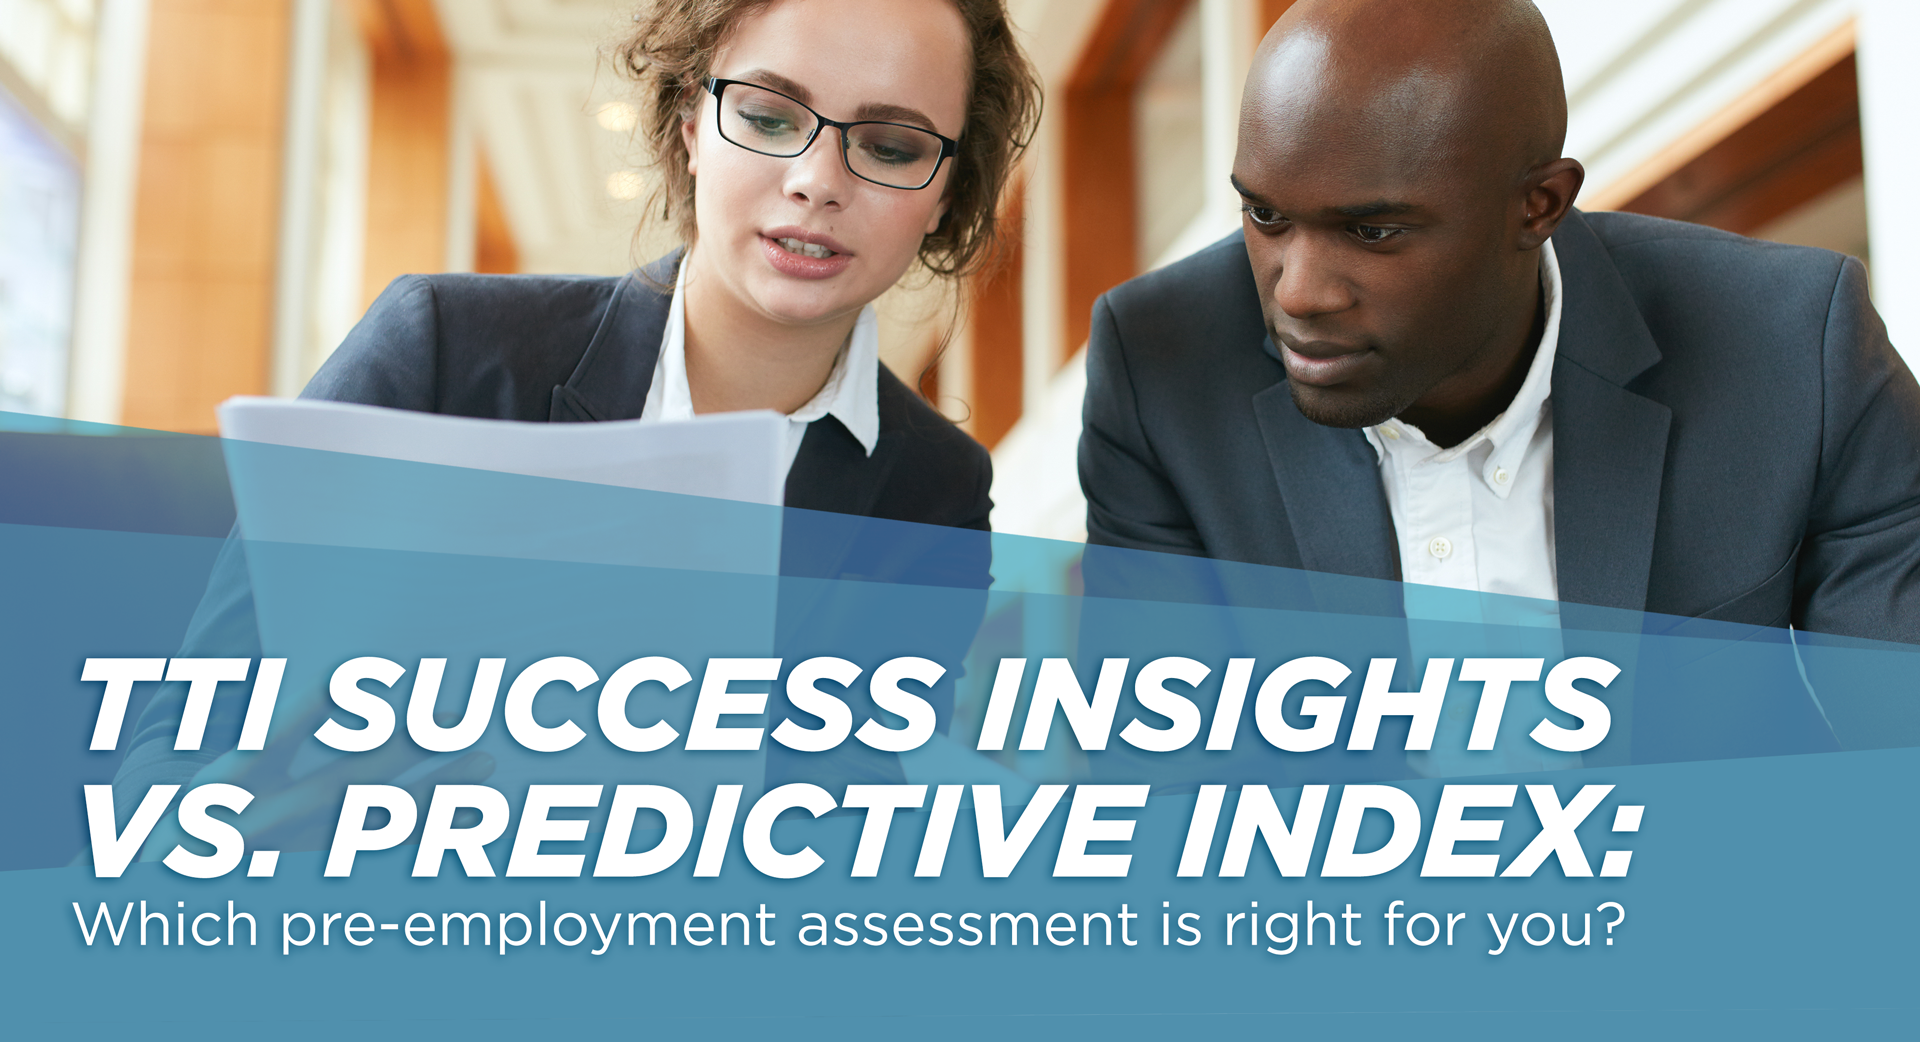 TTI Success Insights vs. Predictive Index: Which pre-employment assessment is right for you?